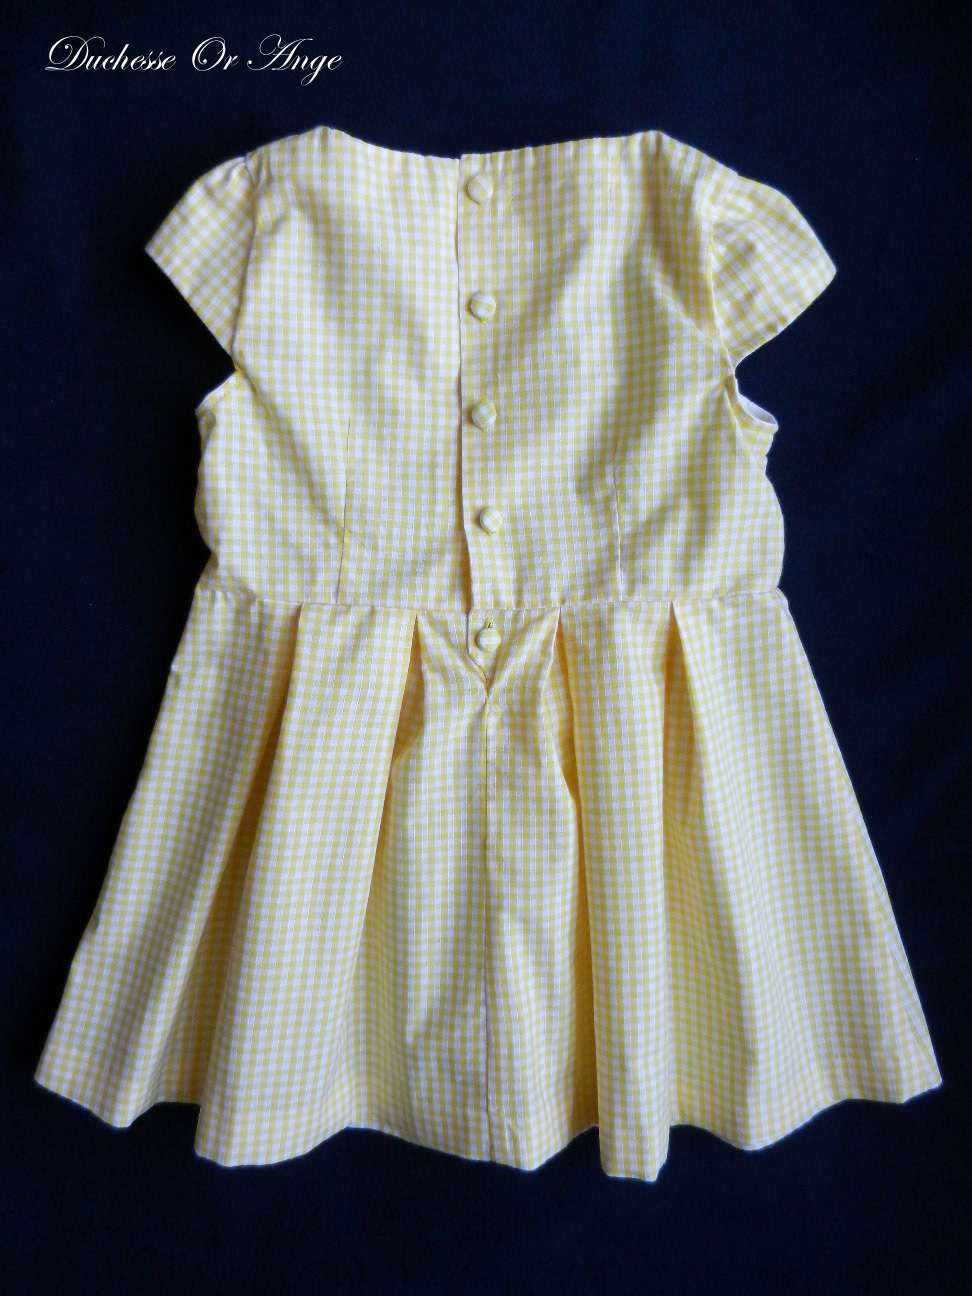 Doa Yellow and white gingham short sleeves dress- 4 years old